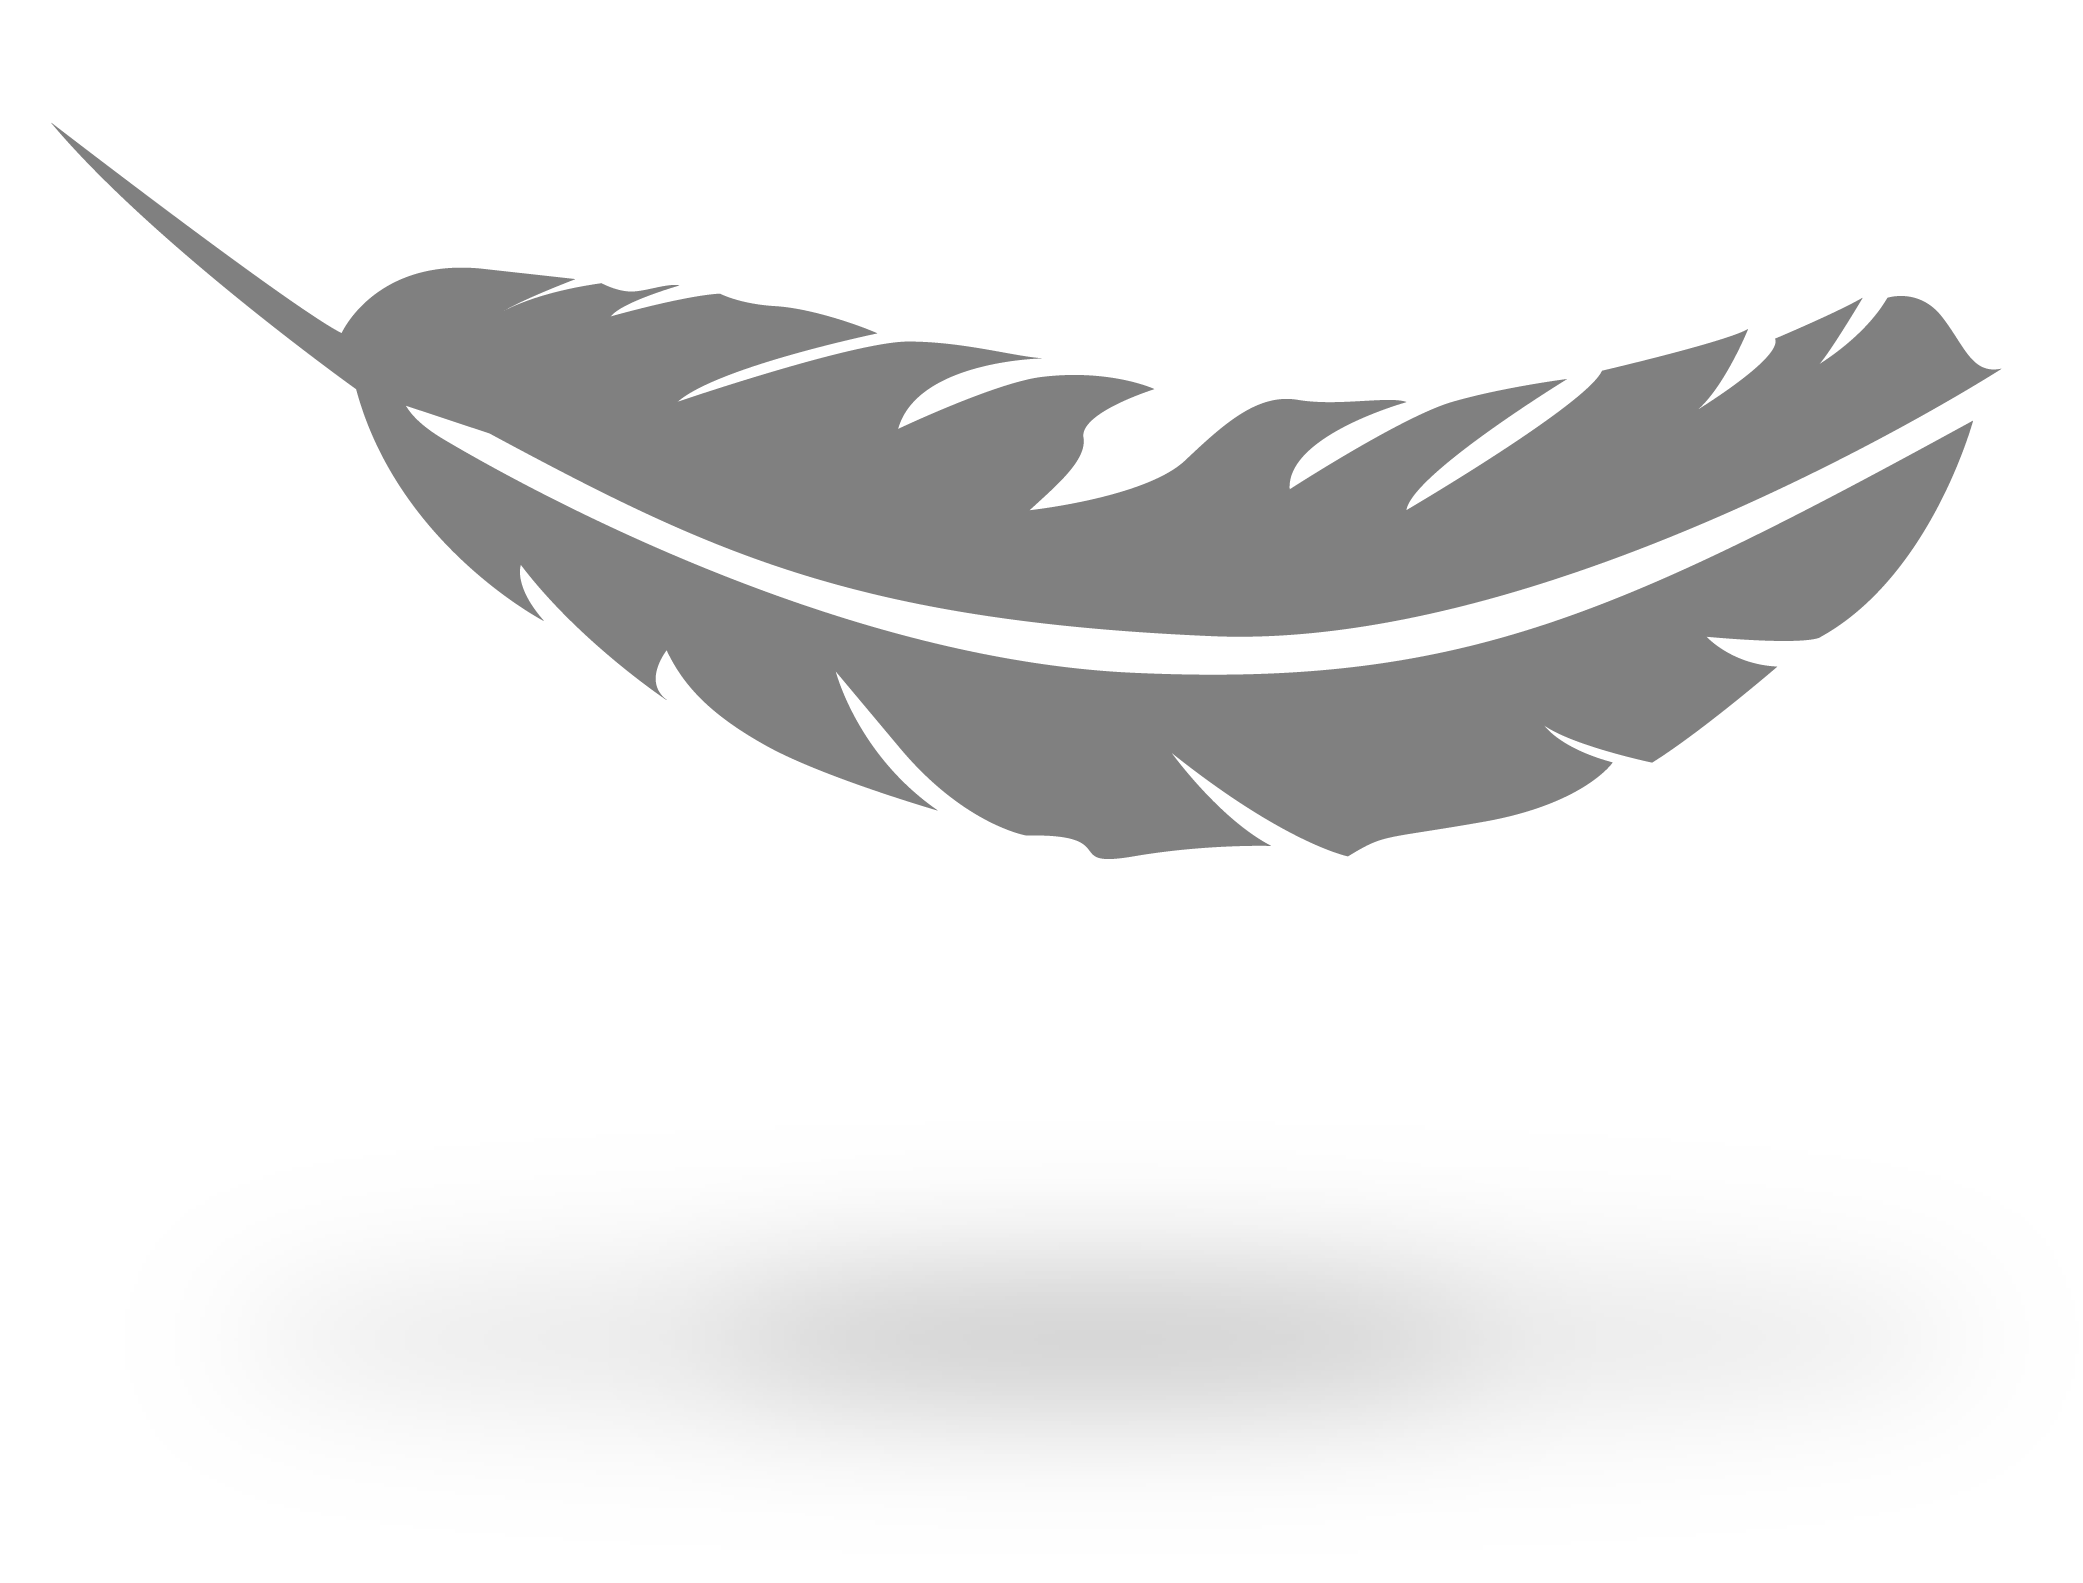 Feathers clipart lightweight. Bt speakers ama systems